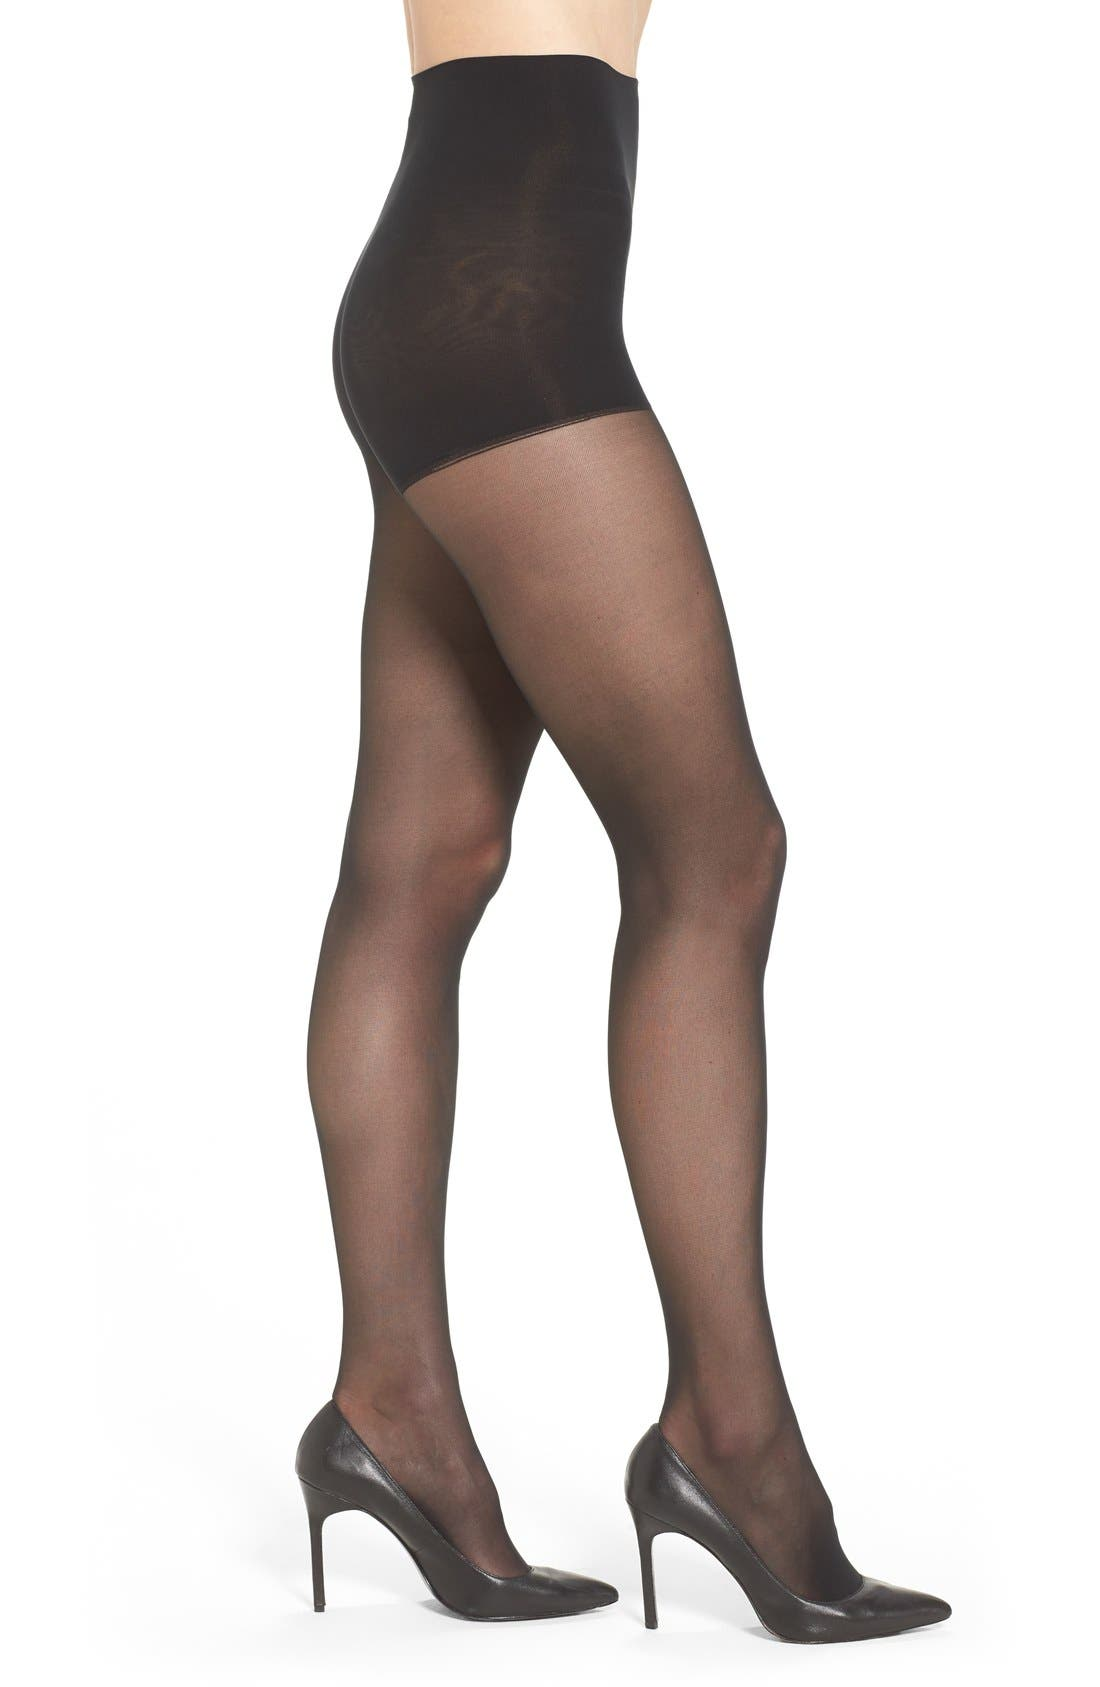 Main Image - DKNY Light Opaque Control Top Tights (2 for $25)